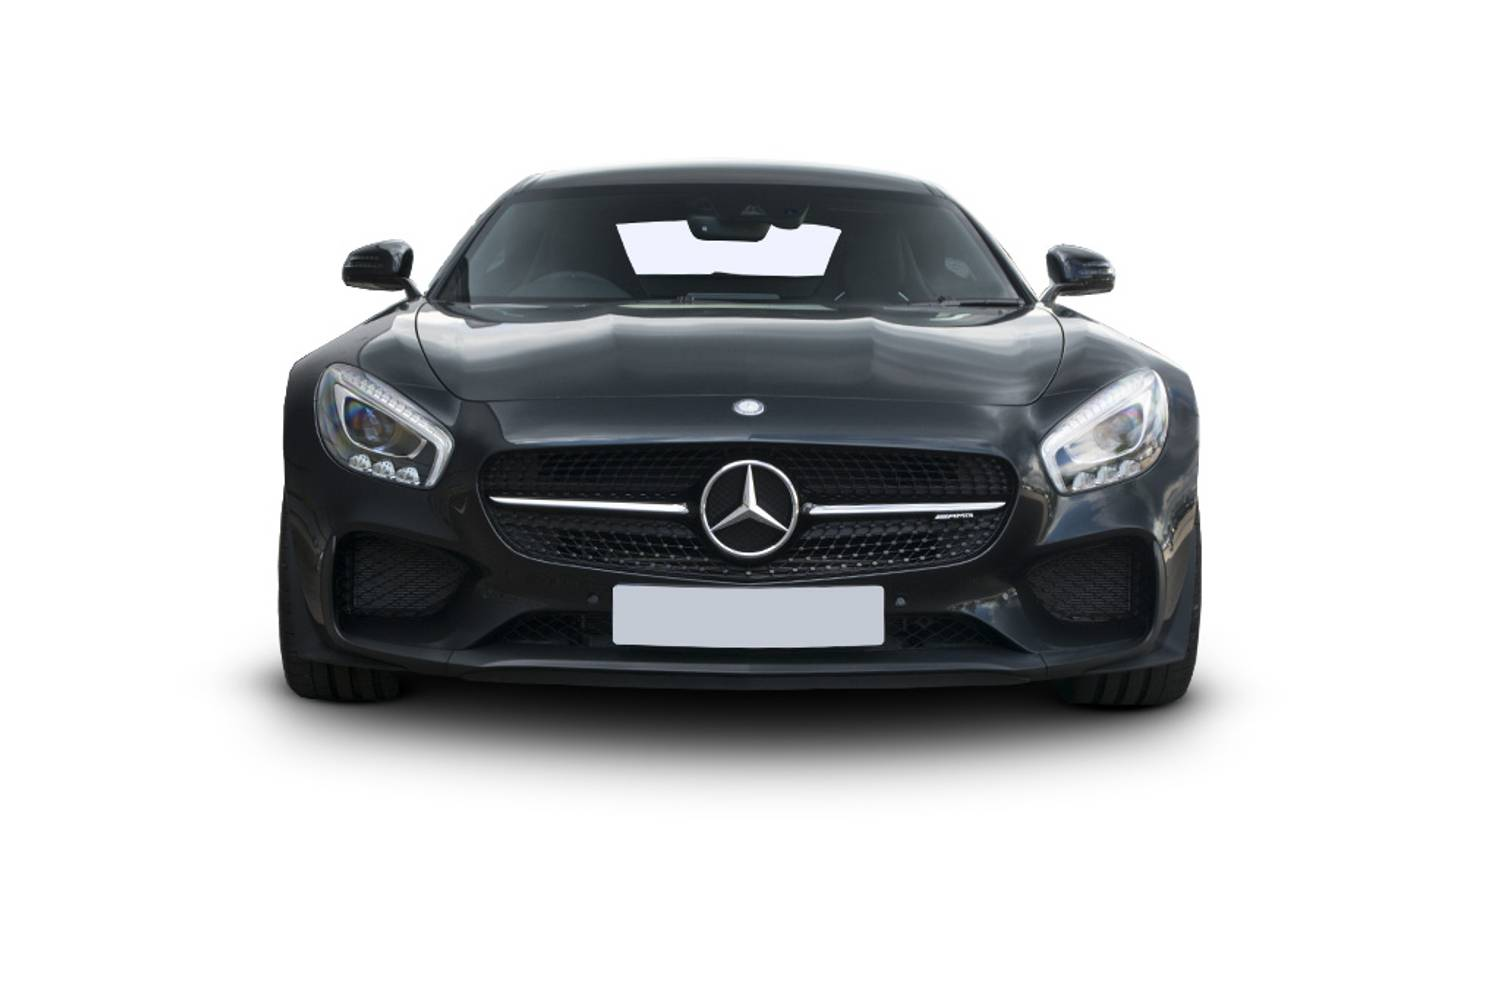 New mercedes benz amg gt coupe gt r premium 2 door auto for Mercedes benz 2 door coupe